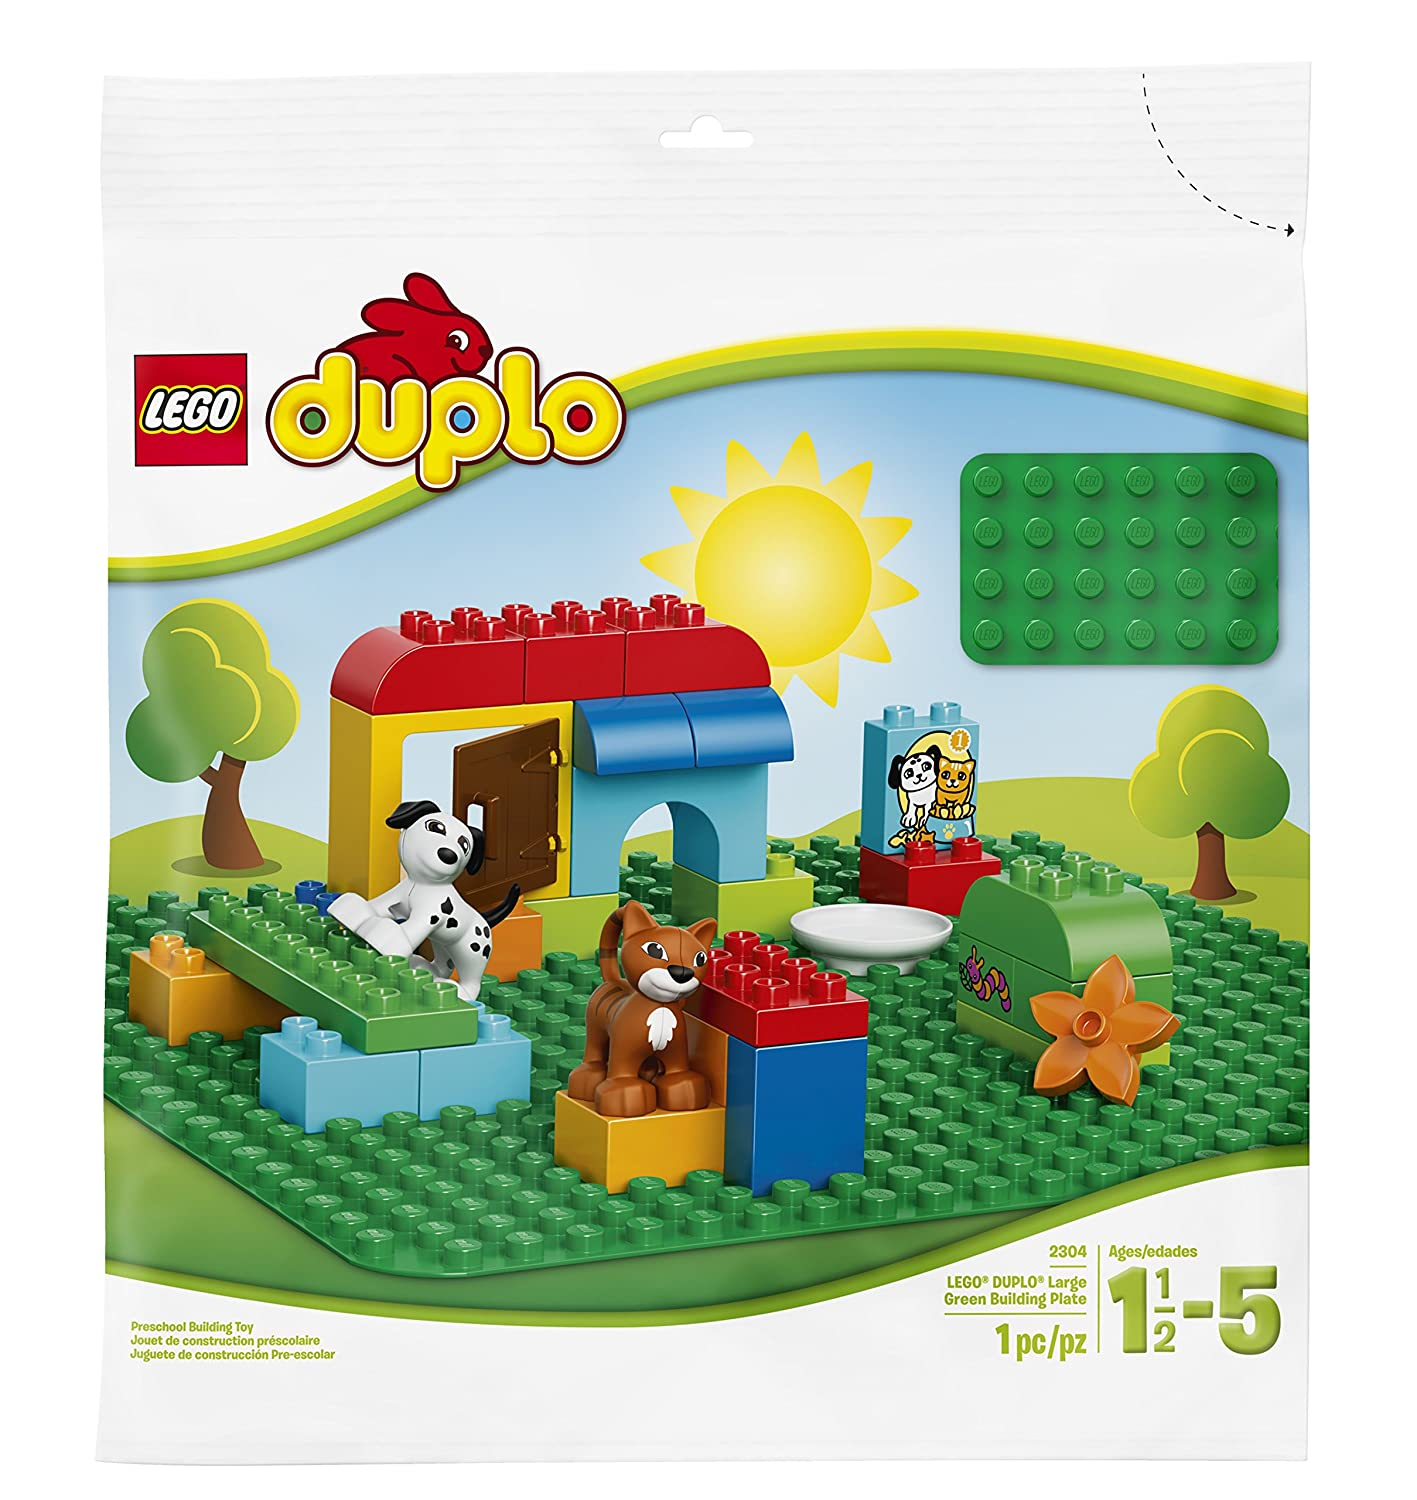 Amazon.com: LEGO Duplo My First Large Green Building Plate 2304 Building  Kit: Toys & Games